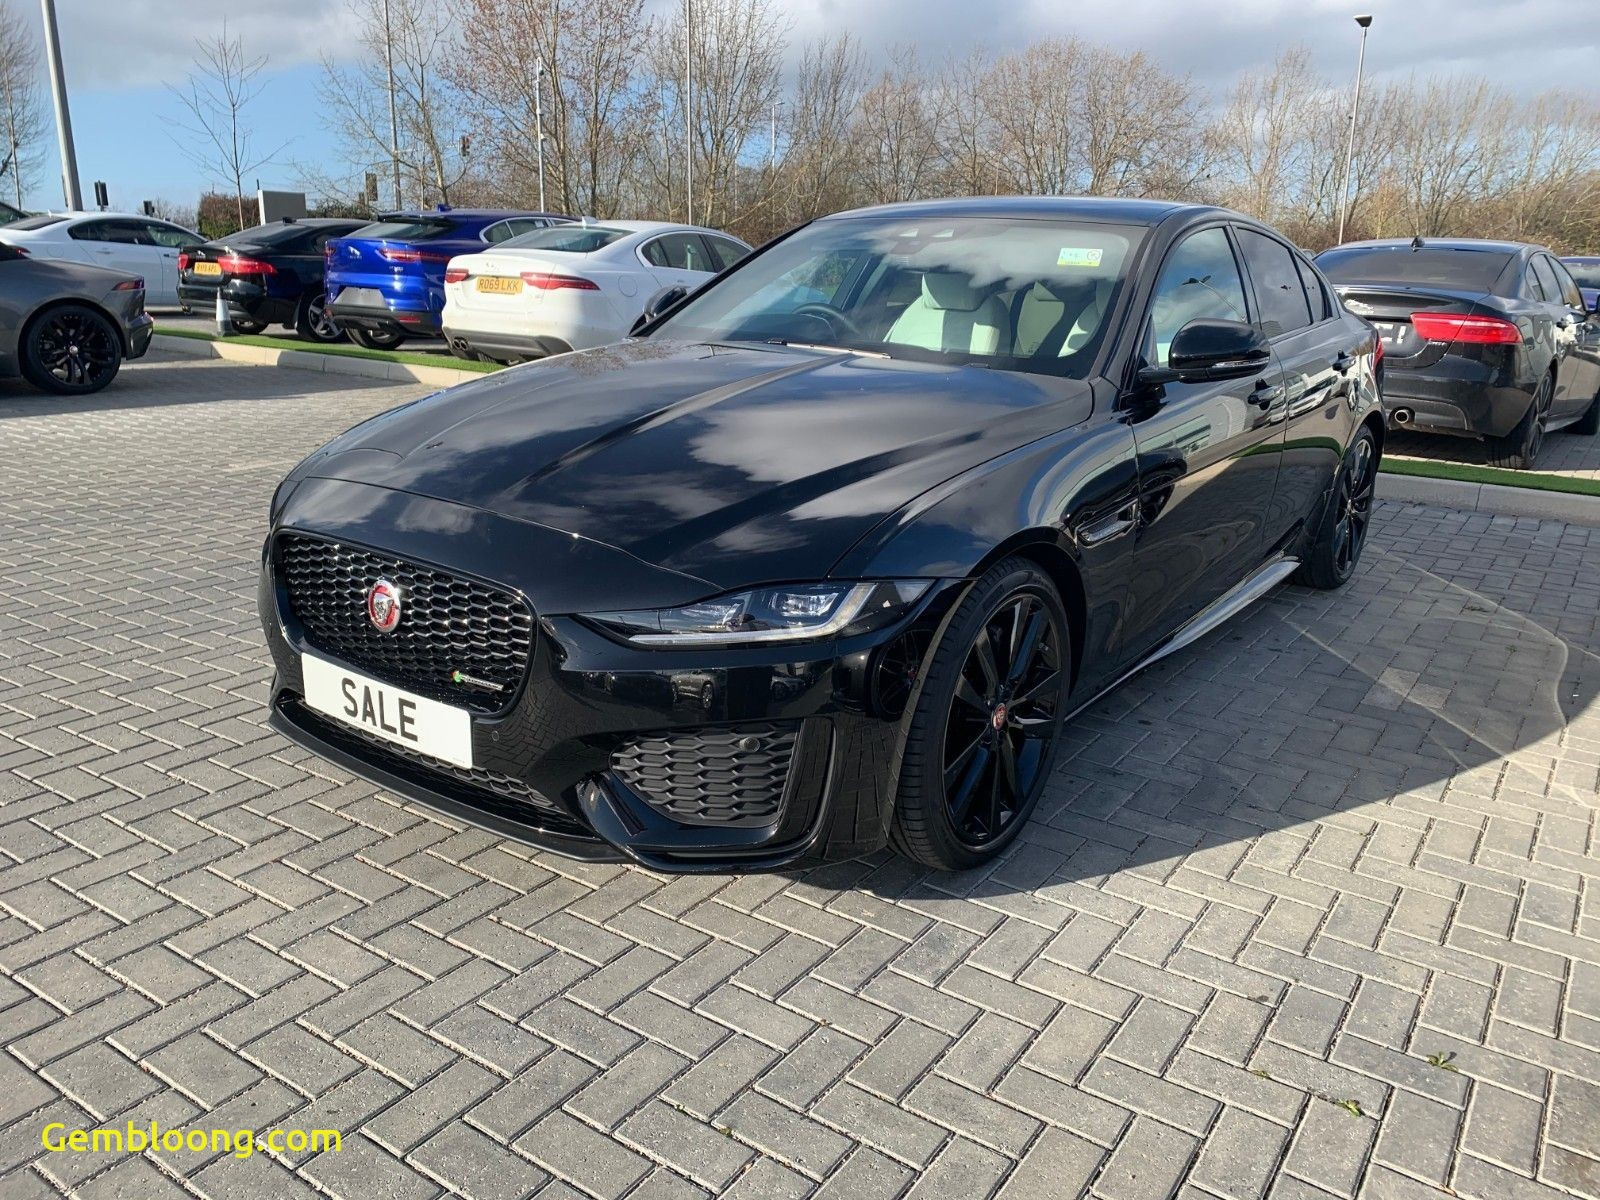 Cars for Sale Near Me by Owner New New & Used Jaguar Xe Cars for Sale